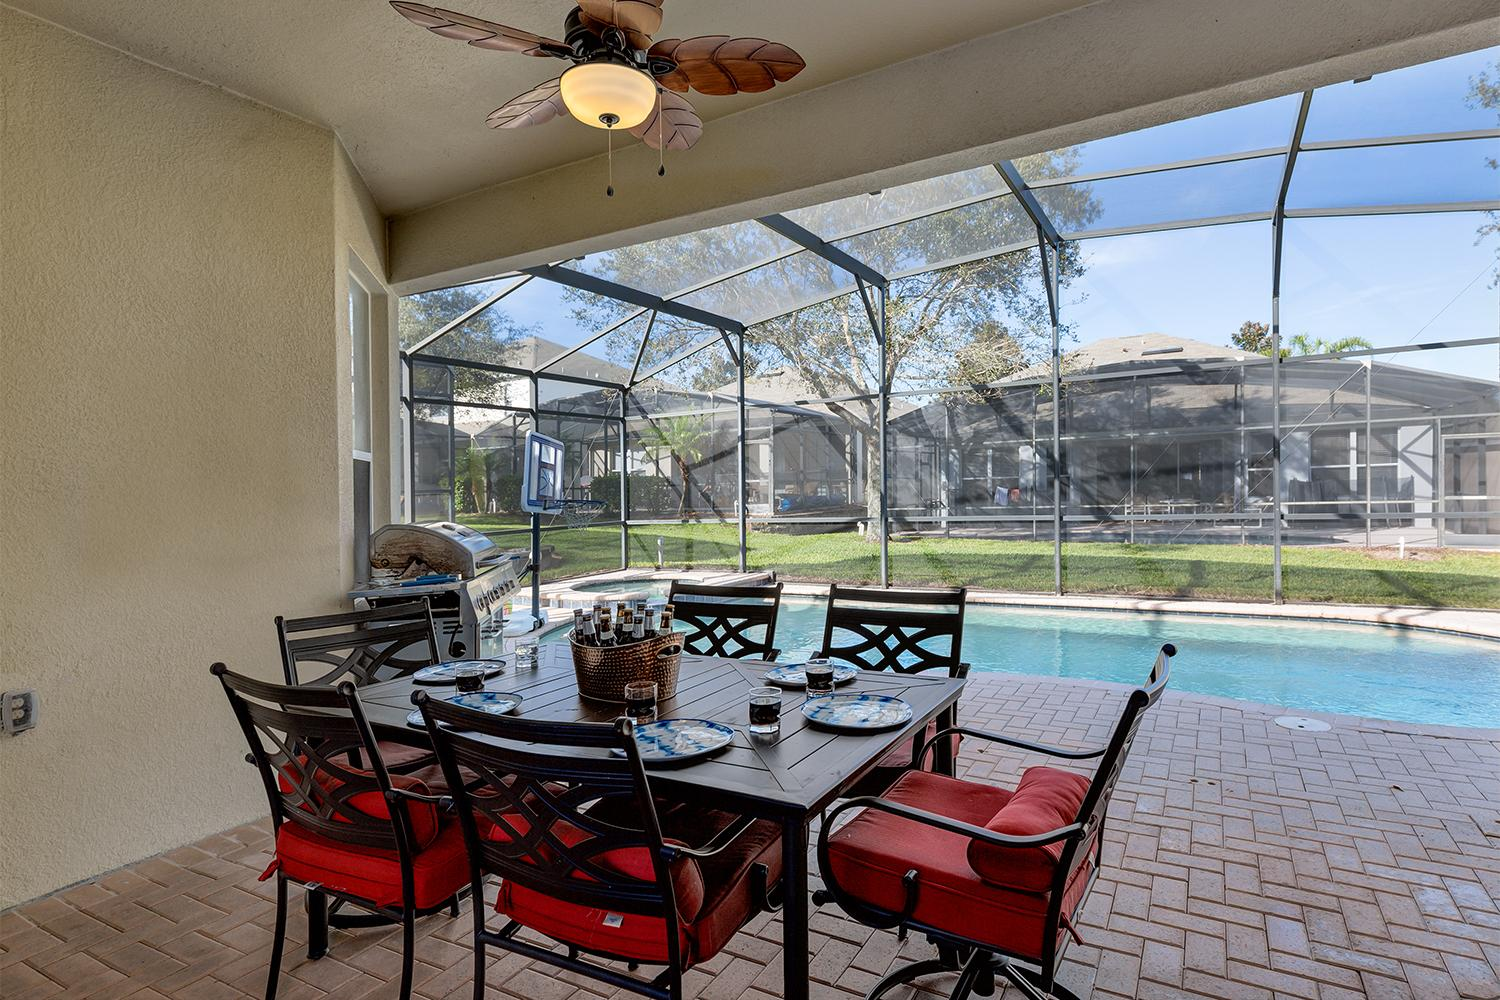 Outdoor dining area in the covered lanai overlooking the private pool.